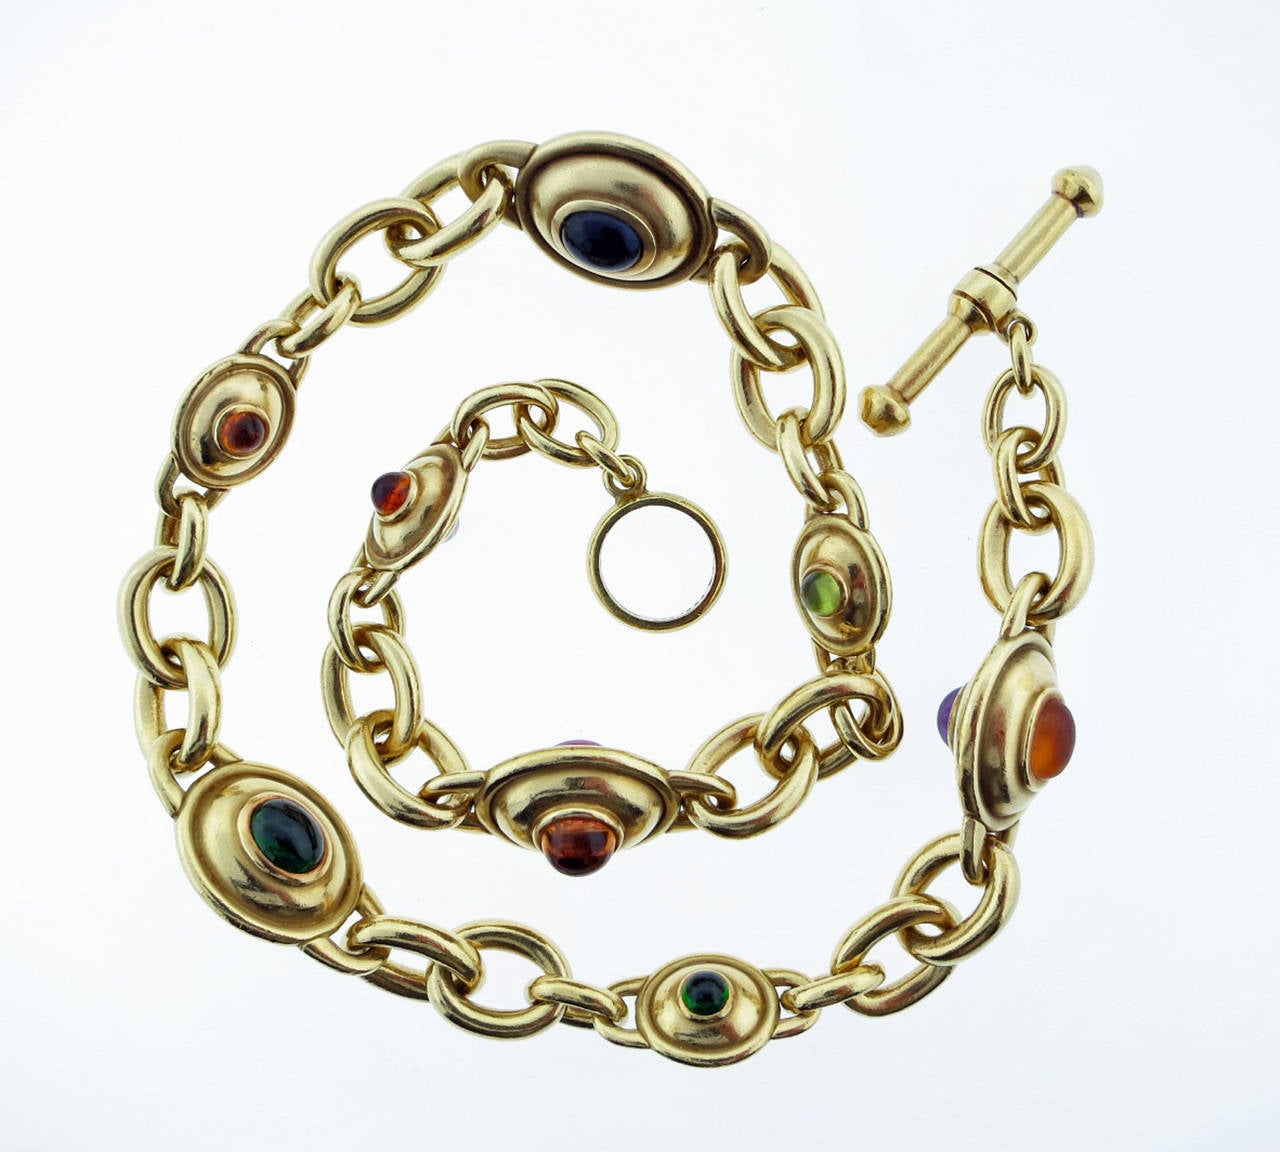 18kt. yellow gold Kieselstein - Cord toggle link necklace. The  double sided links are bezel with a mix of cabachon garnet, tourmaline, citrine, amethyst and peridot.The necklace measures 19 inches and weighs an ample 214.1 gr. Signed and dated 1984.